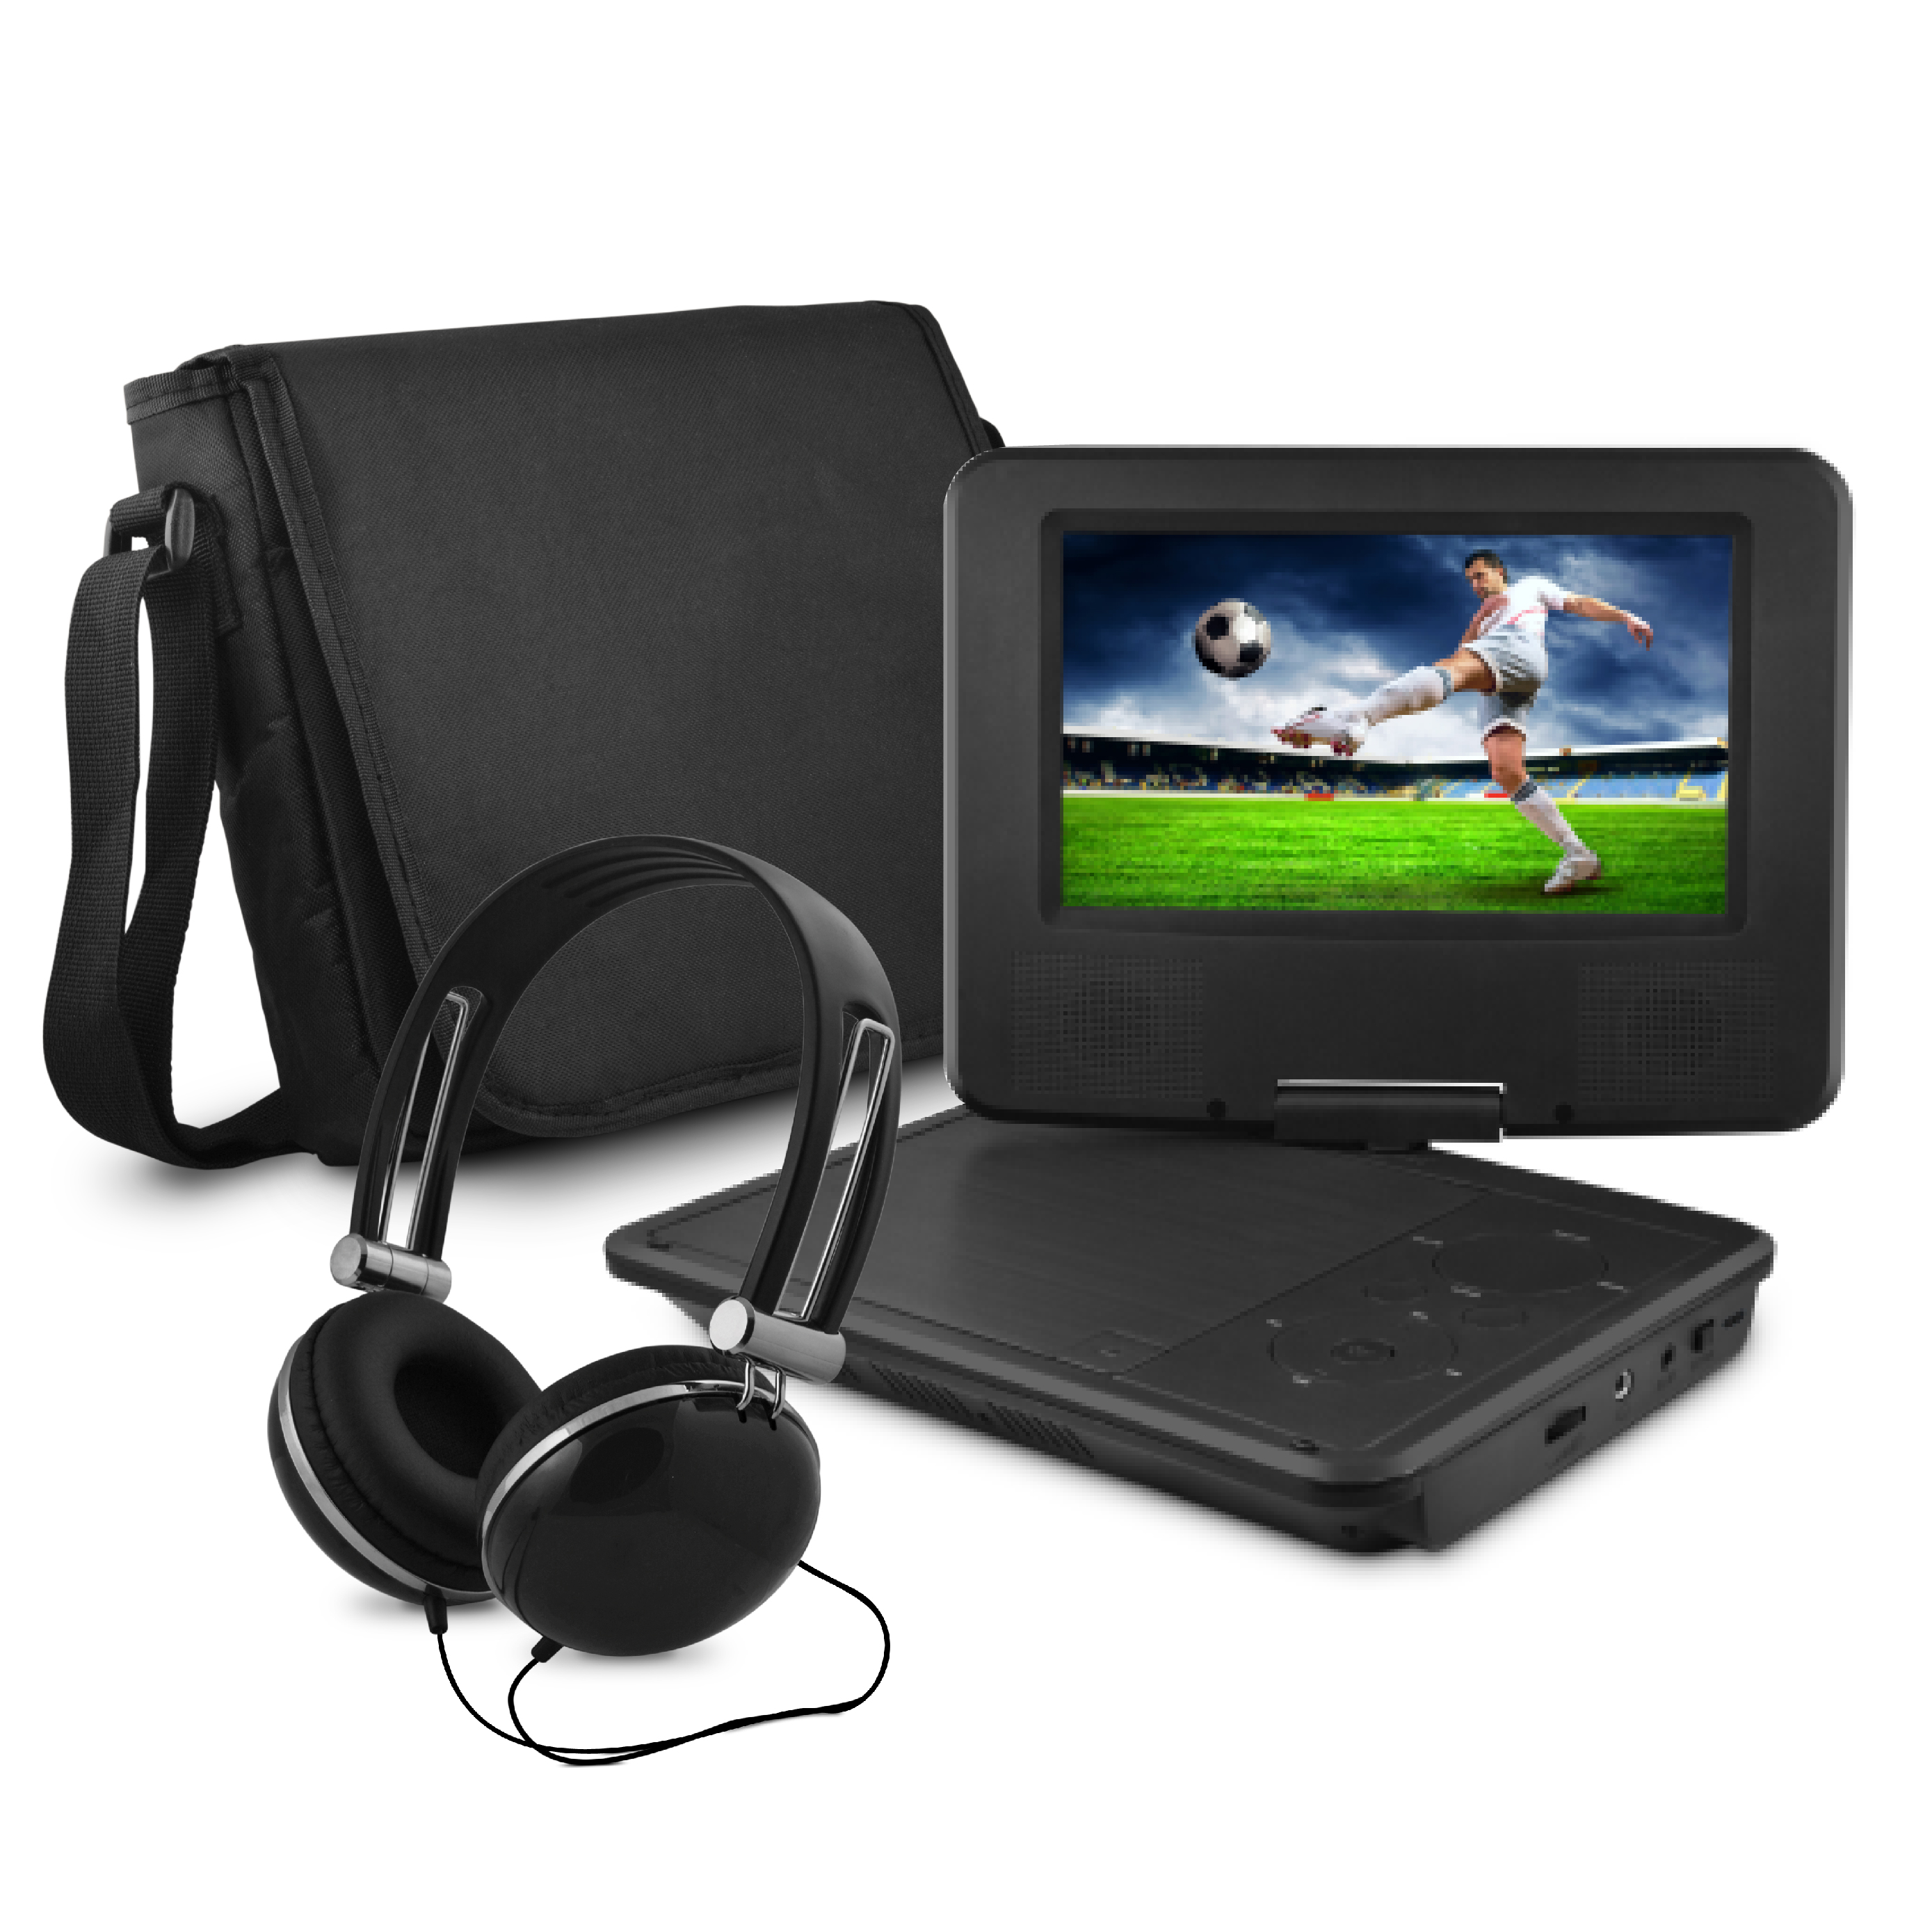 Onn Dvd Recorder Manual The Ultimate Wiring Thread Updated 72716 Guitar Array 7 Portable Player With Matching Headphones And Bag Rh Walmart Com